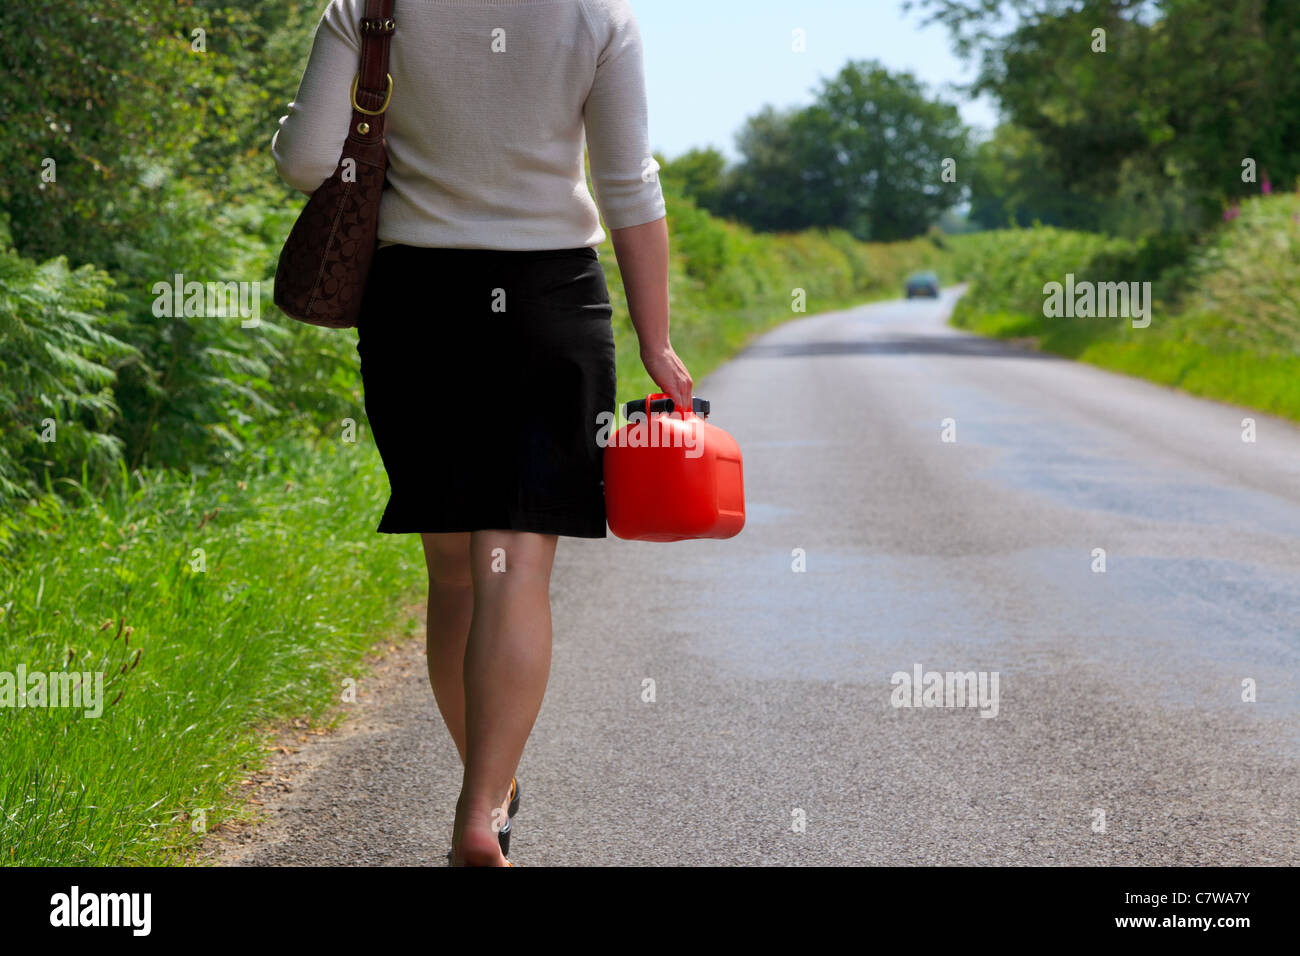 Photo of a woman who's vehicle has broken down walking along a country lane with a spare fuel can in her hand. - Stock Image